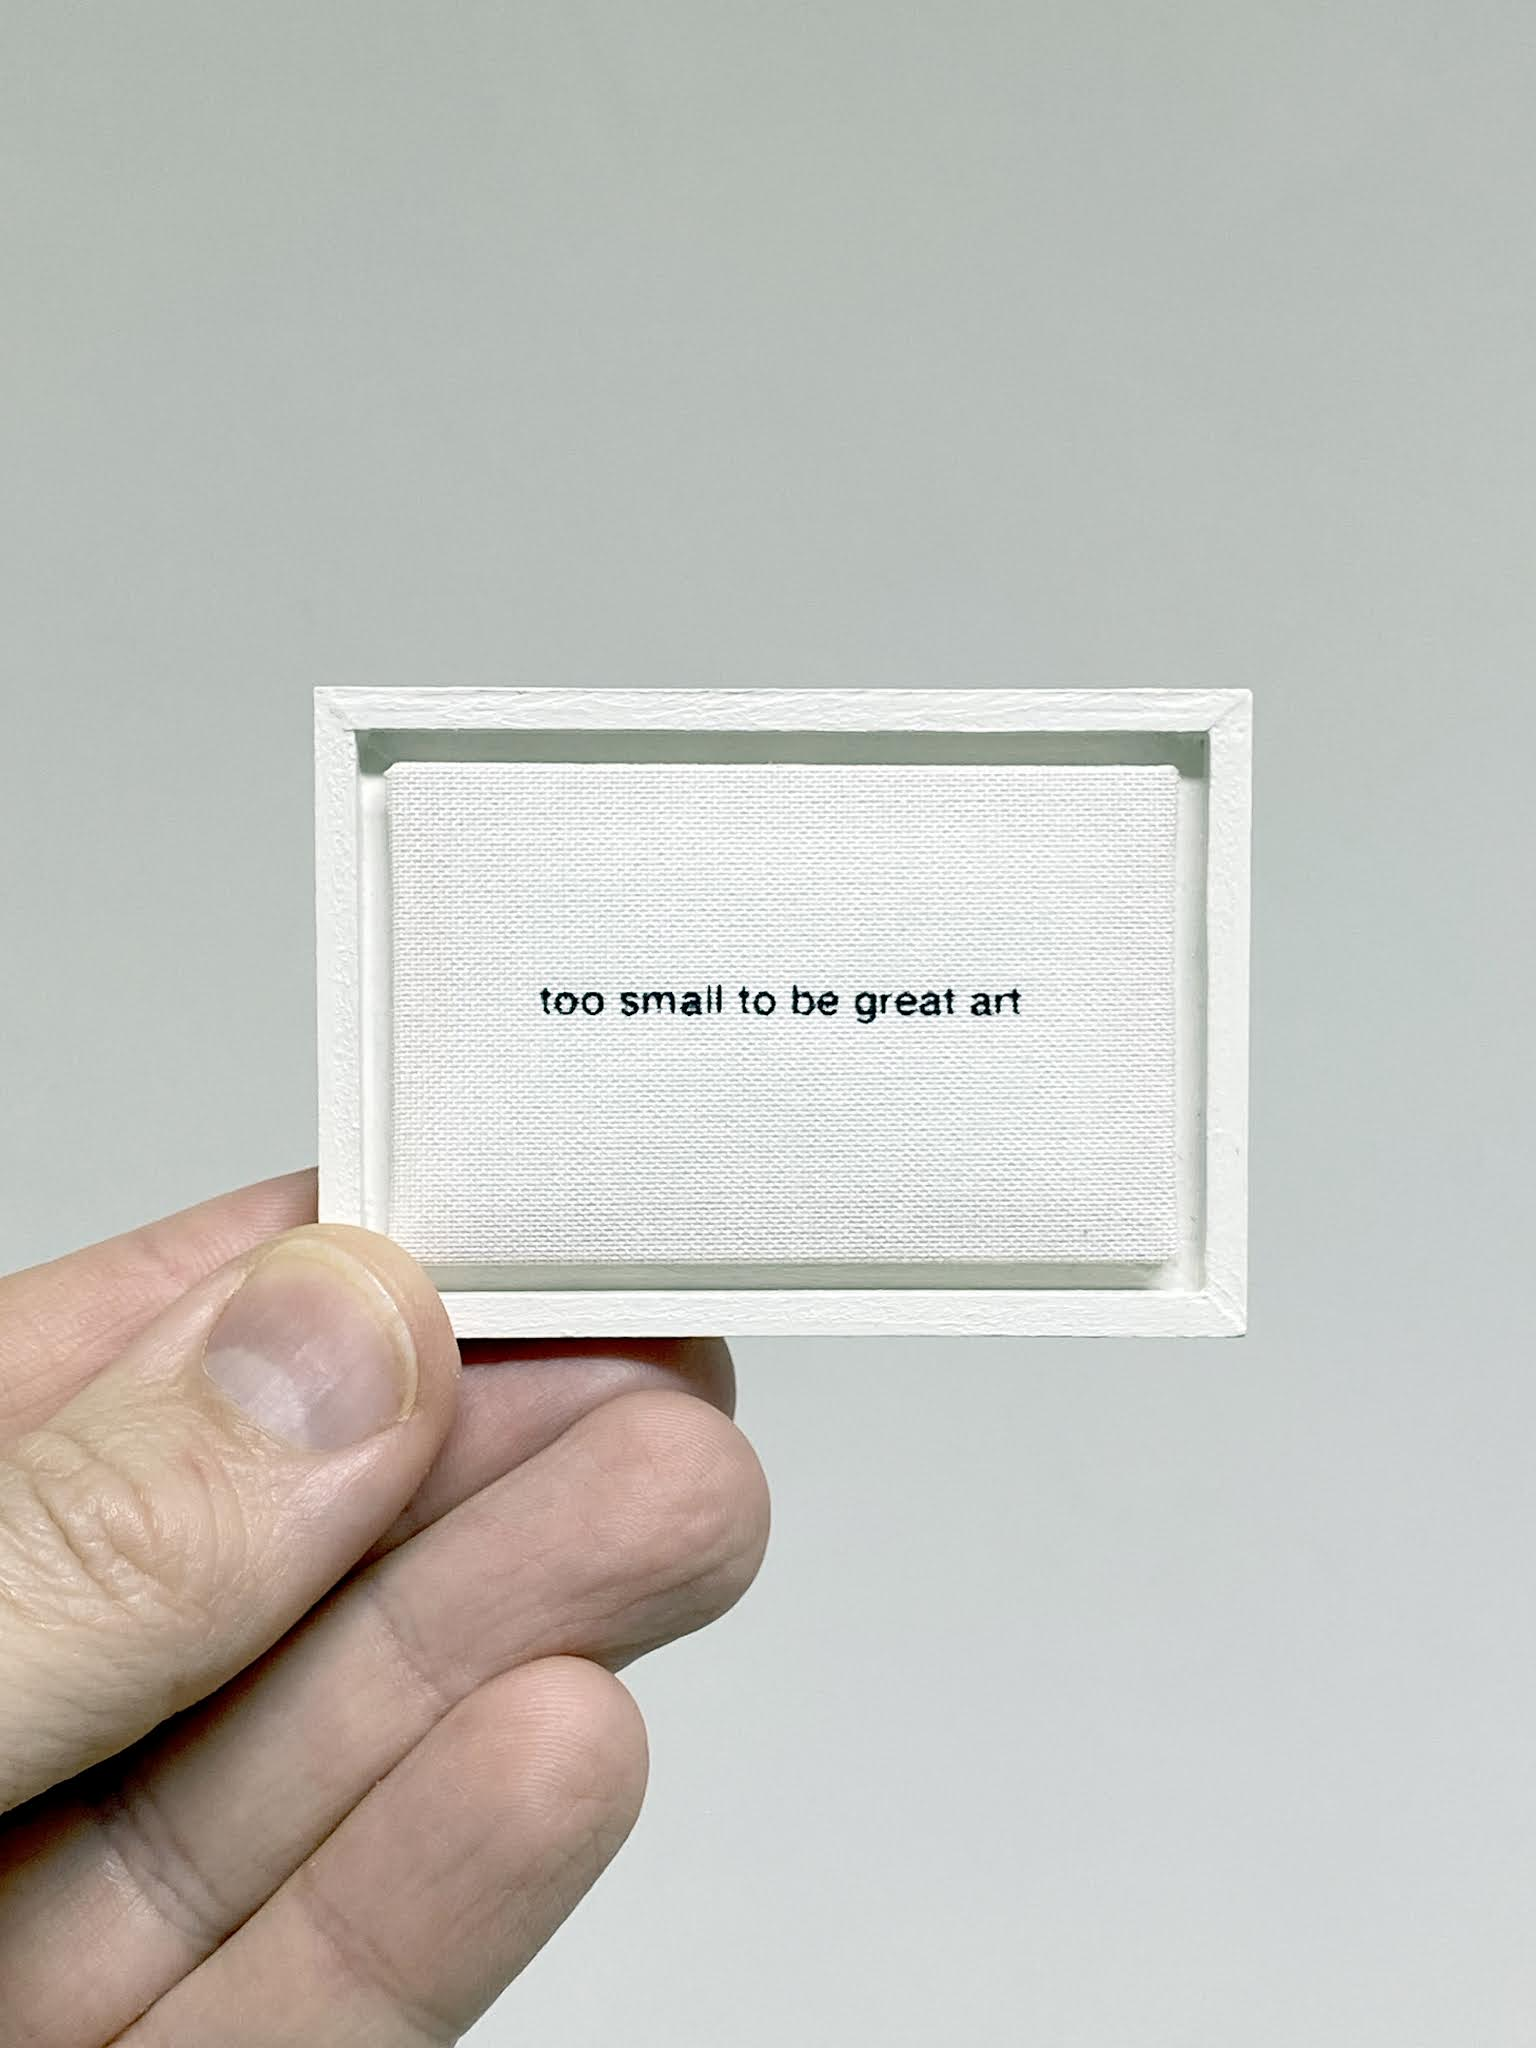 too small to be great art by anatol knotek